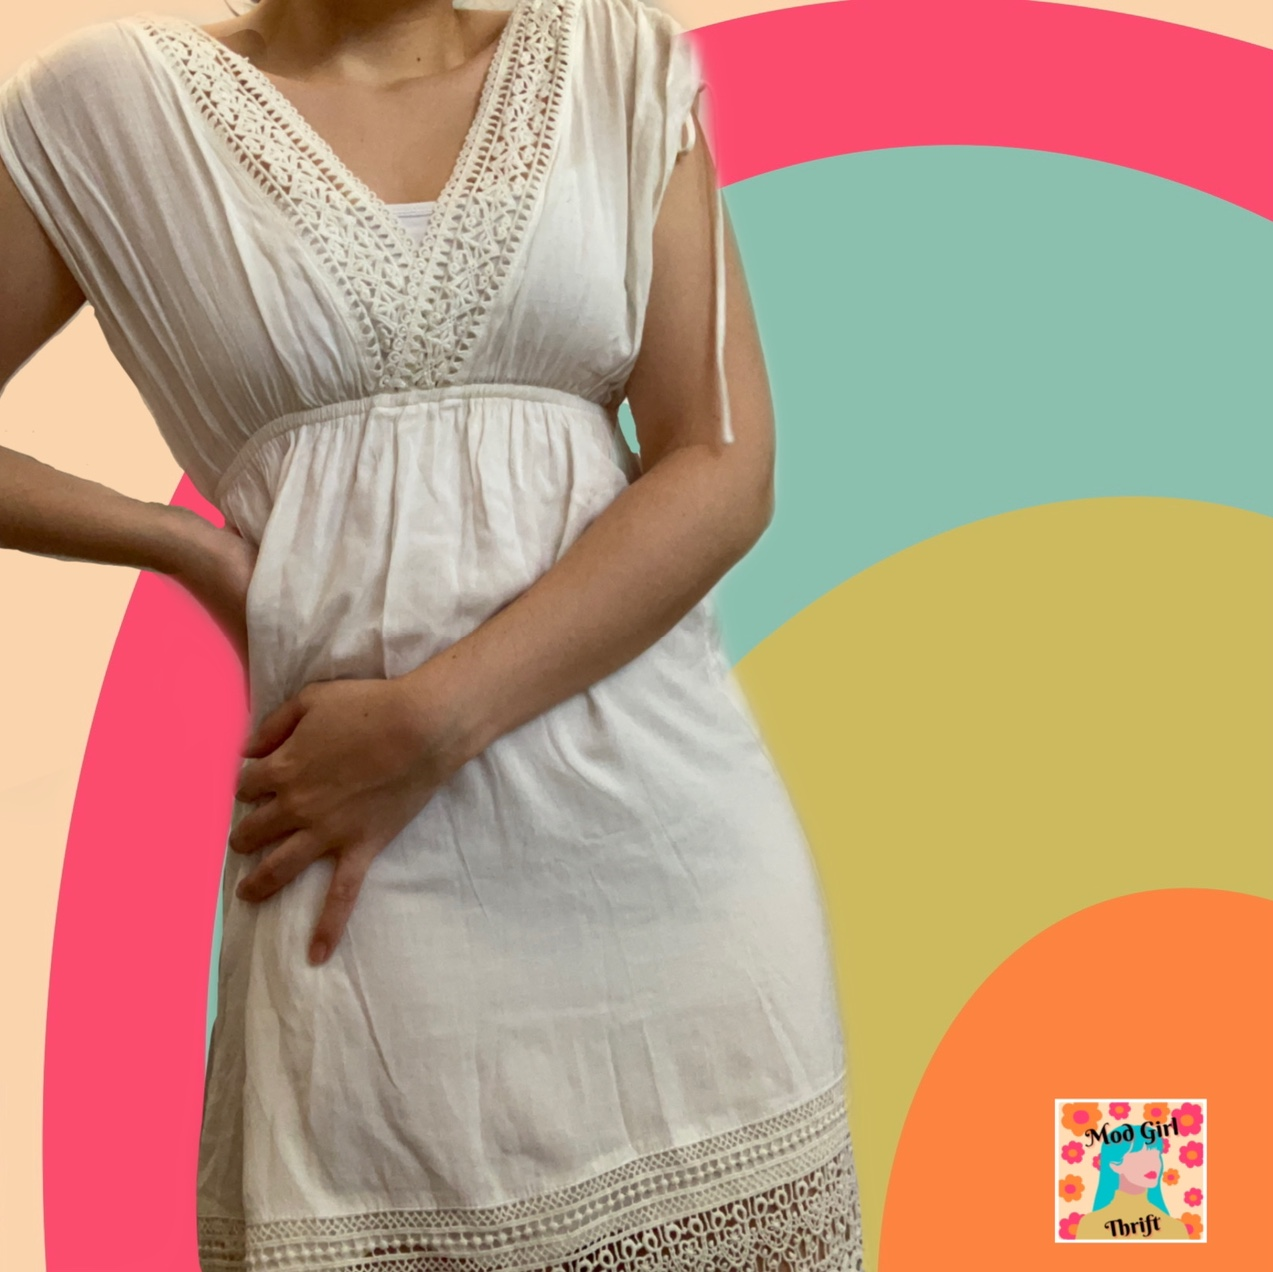 Product Image 1 - Romantic beach date cover up.